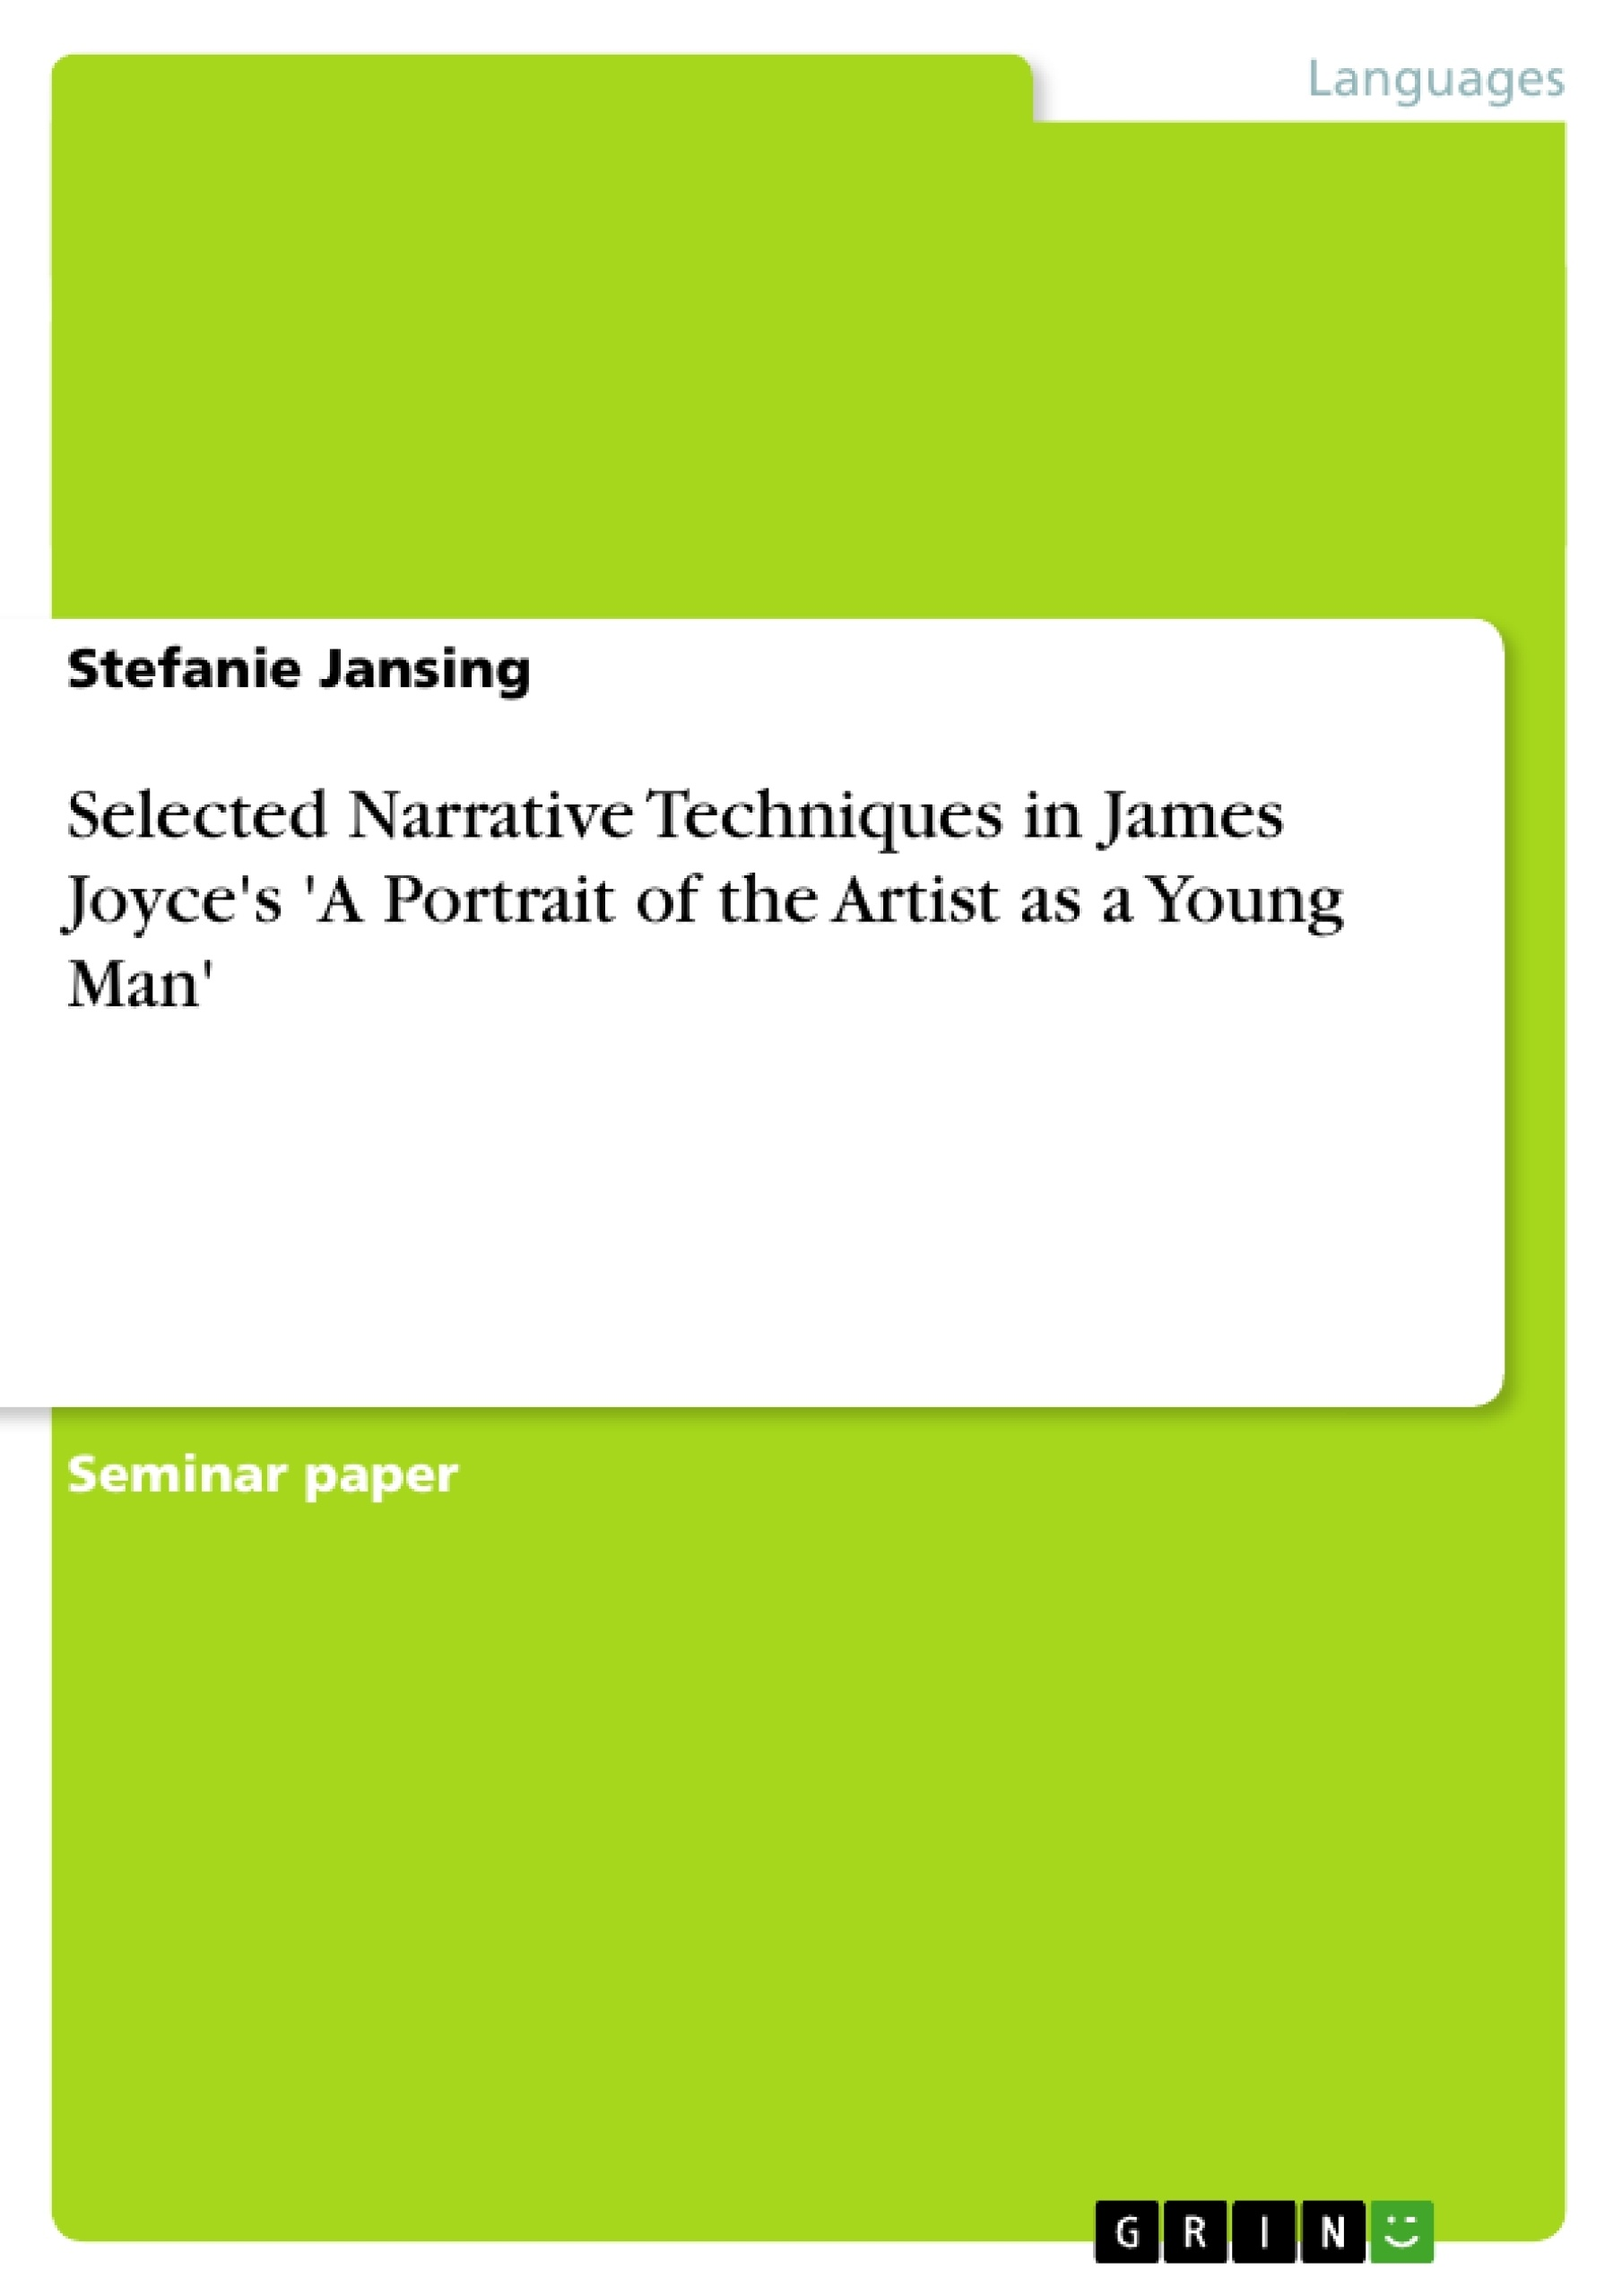 Title: Selected Narrative Techniques in James Joyce's 'A Portrait of the Artist as a Young Man'